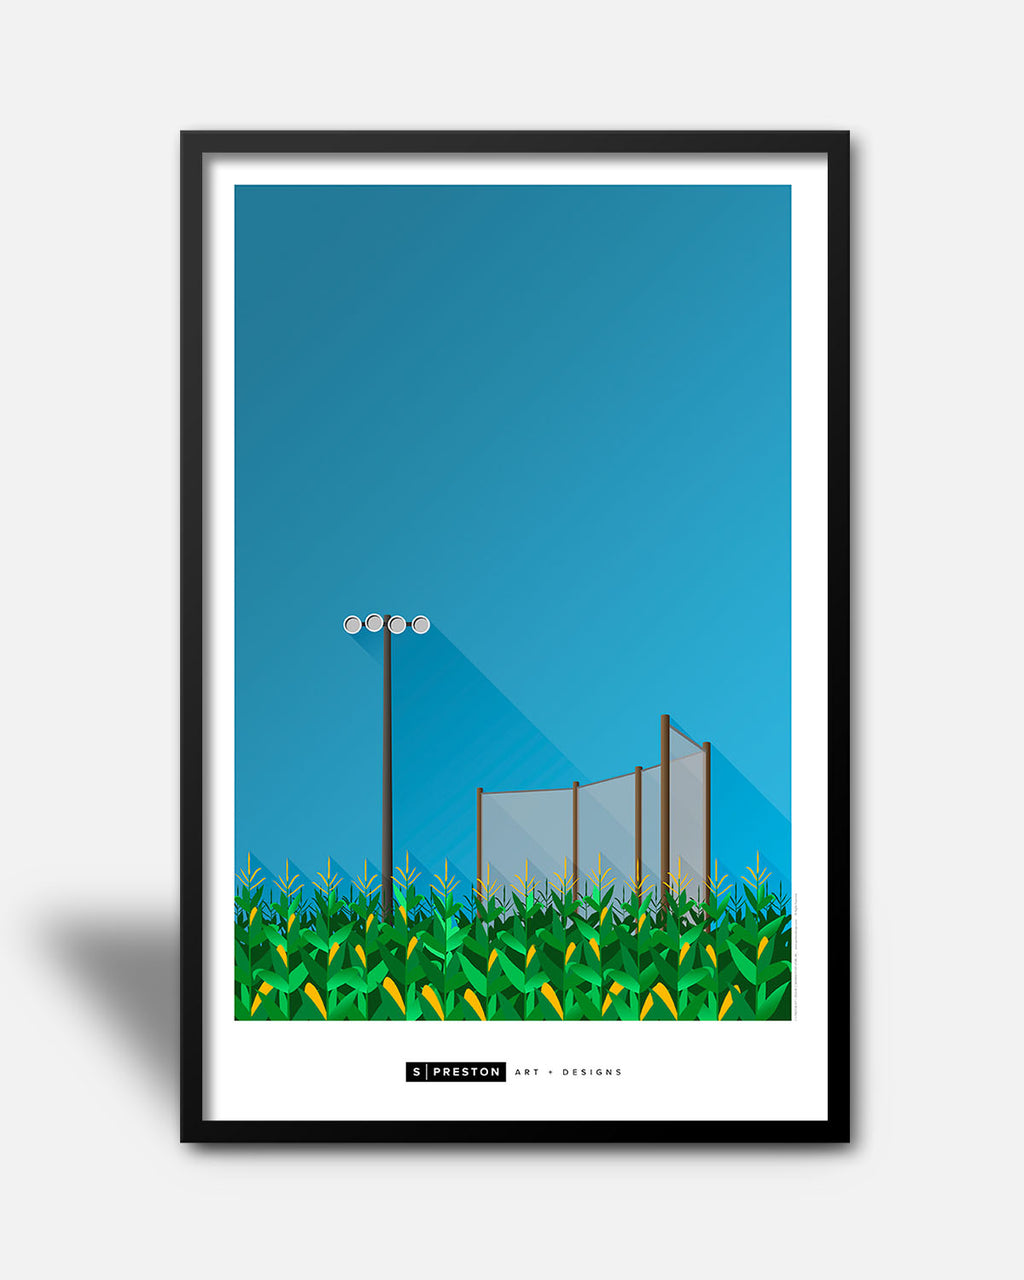 Minimalist Field Of Dreams Park Poster Print Sports Movies - S Preston